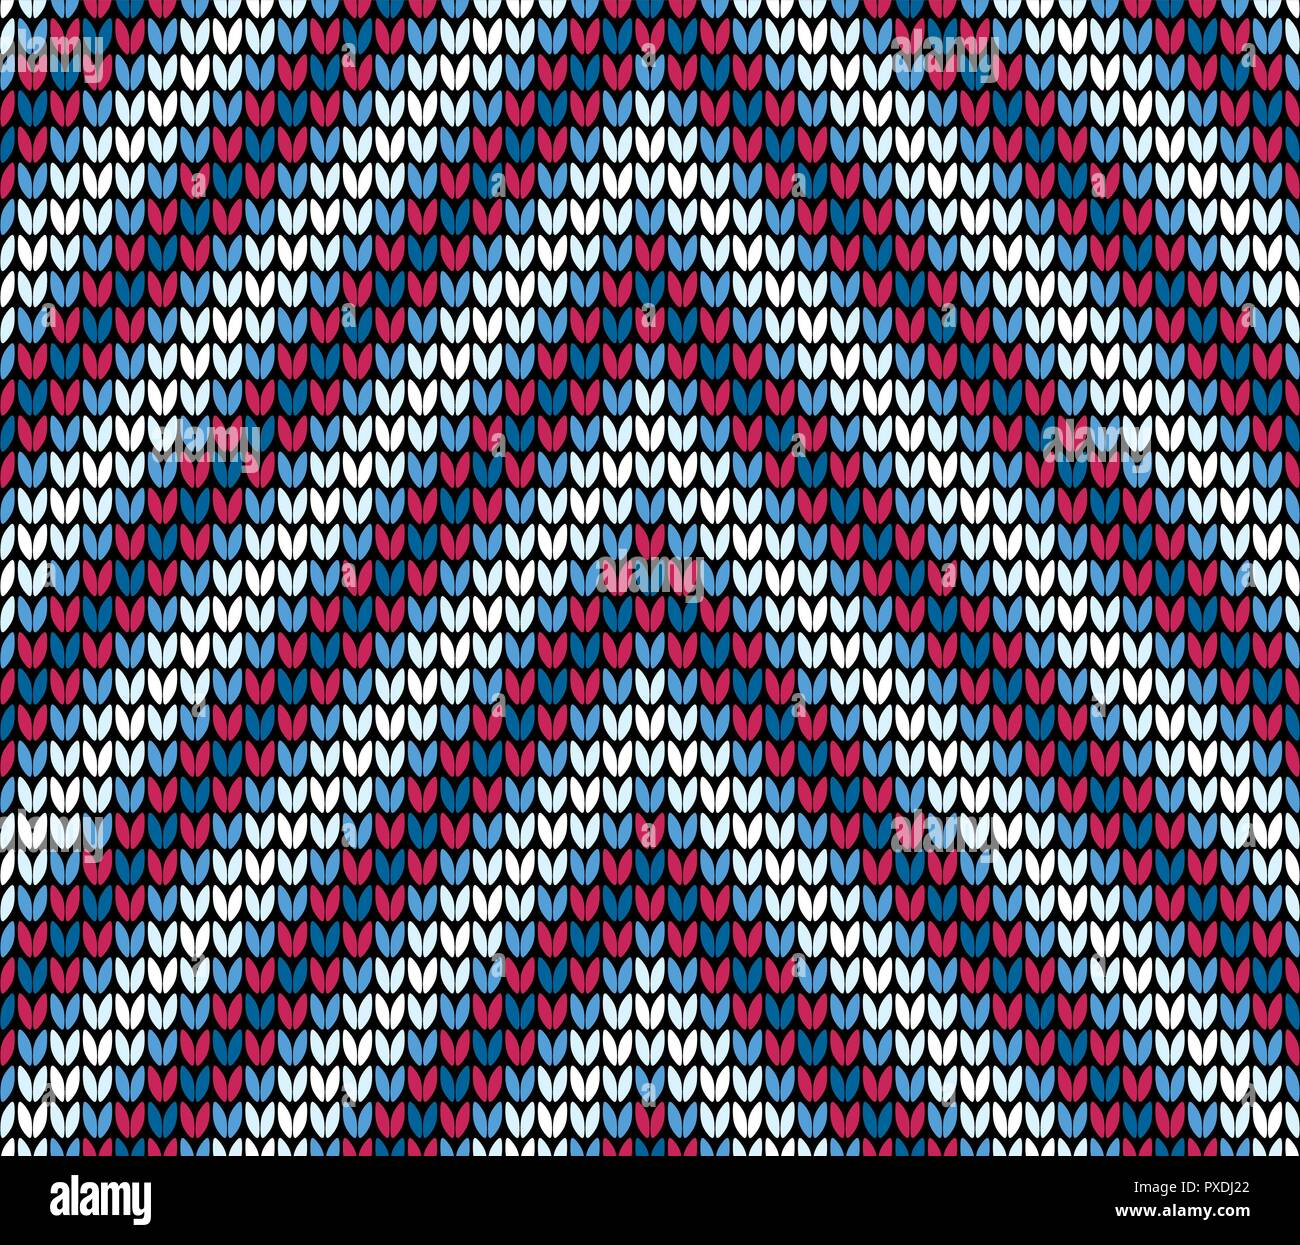 Abstract red and blue seamless knitting pattern background - Stock Vector